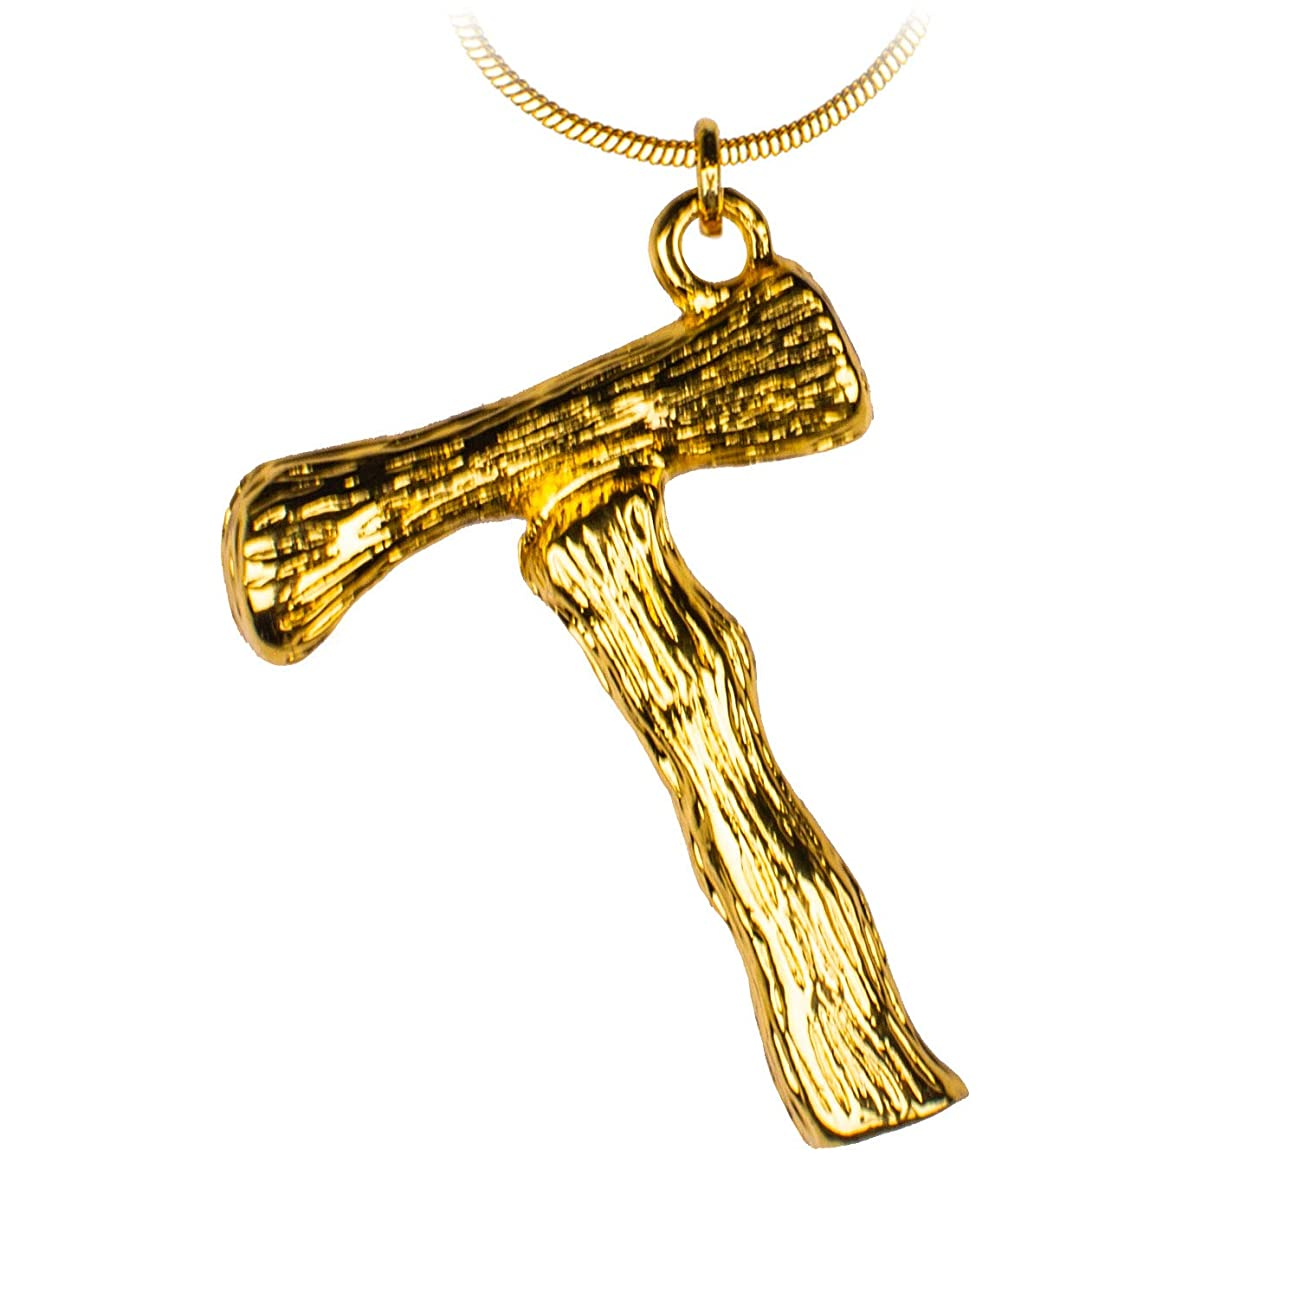 ANAKIKI 26 Initial Letters Alphabet Charm Bamboo Pendant Necklace 18k Gold Plated Snake Chain Personalized Gifts for Women